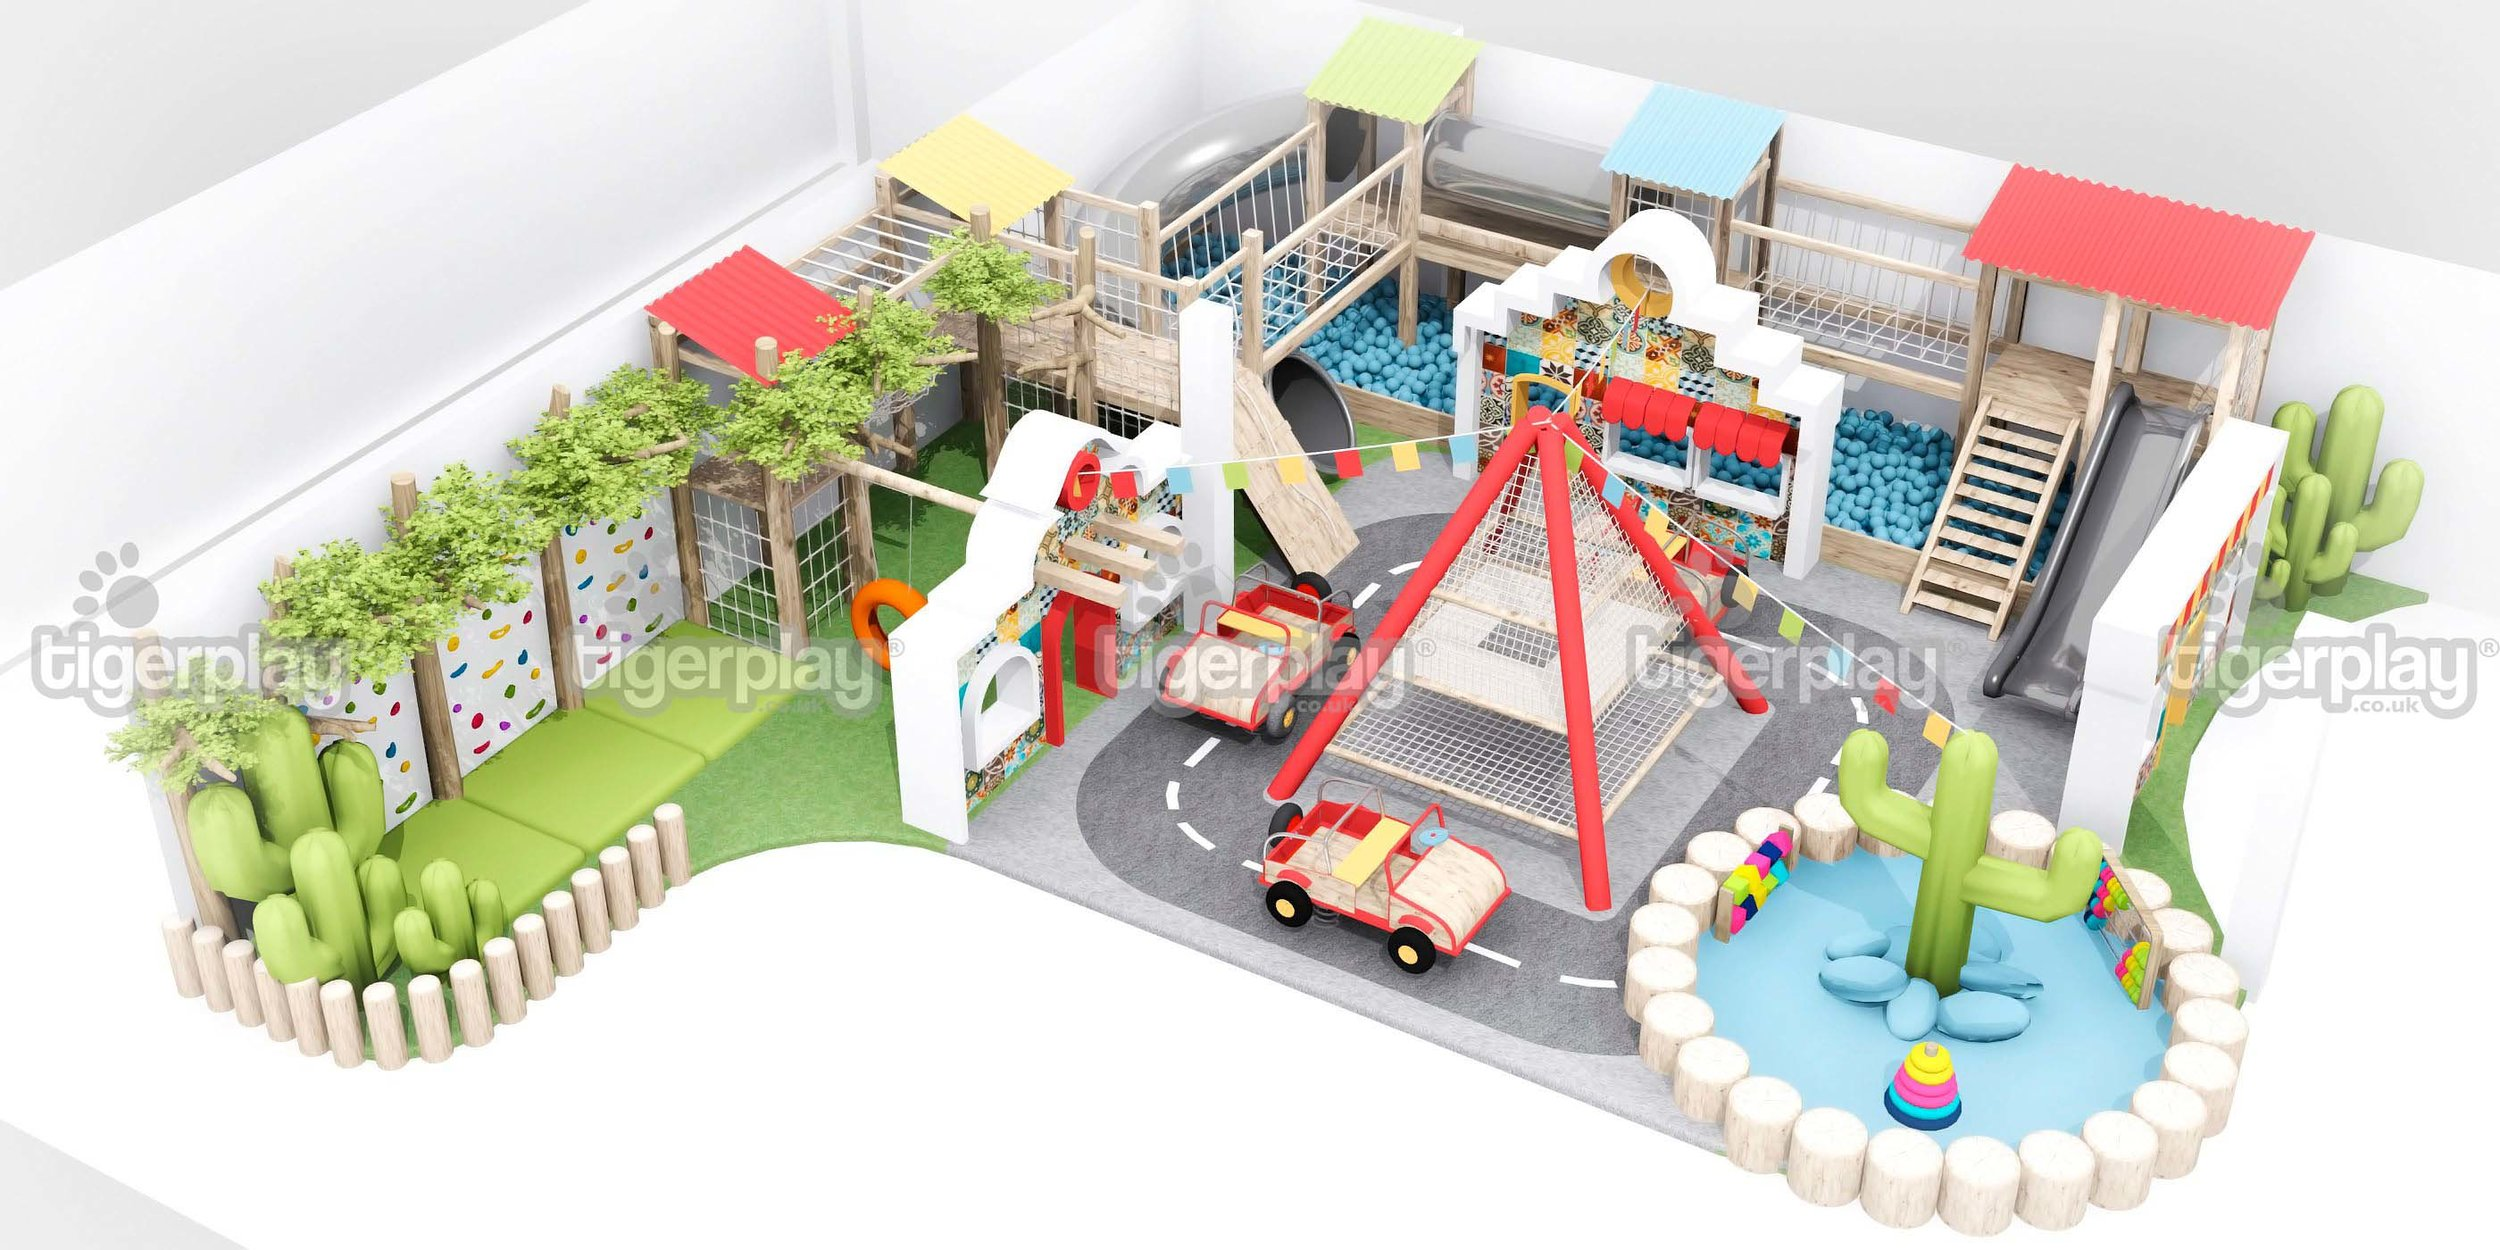 Tigerplay_Angel Court -  Play Area_V1-3.jpg